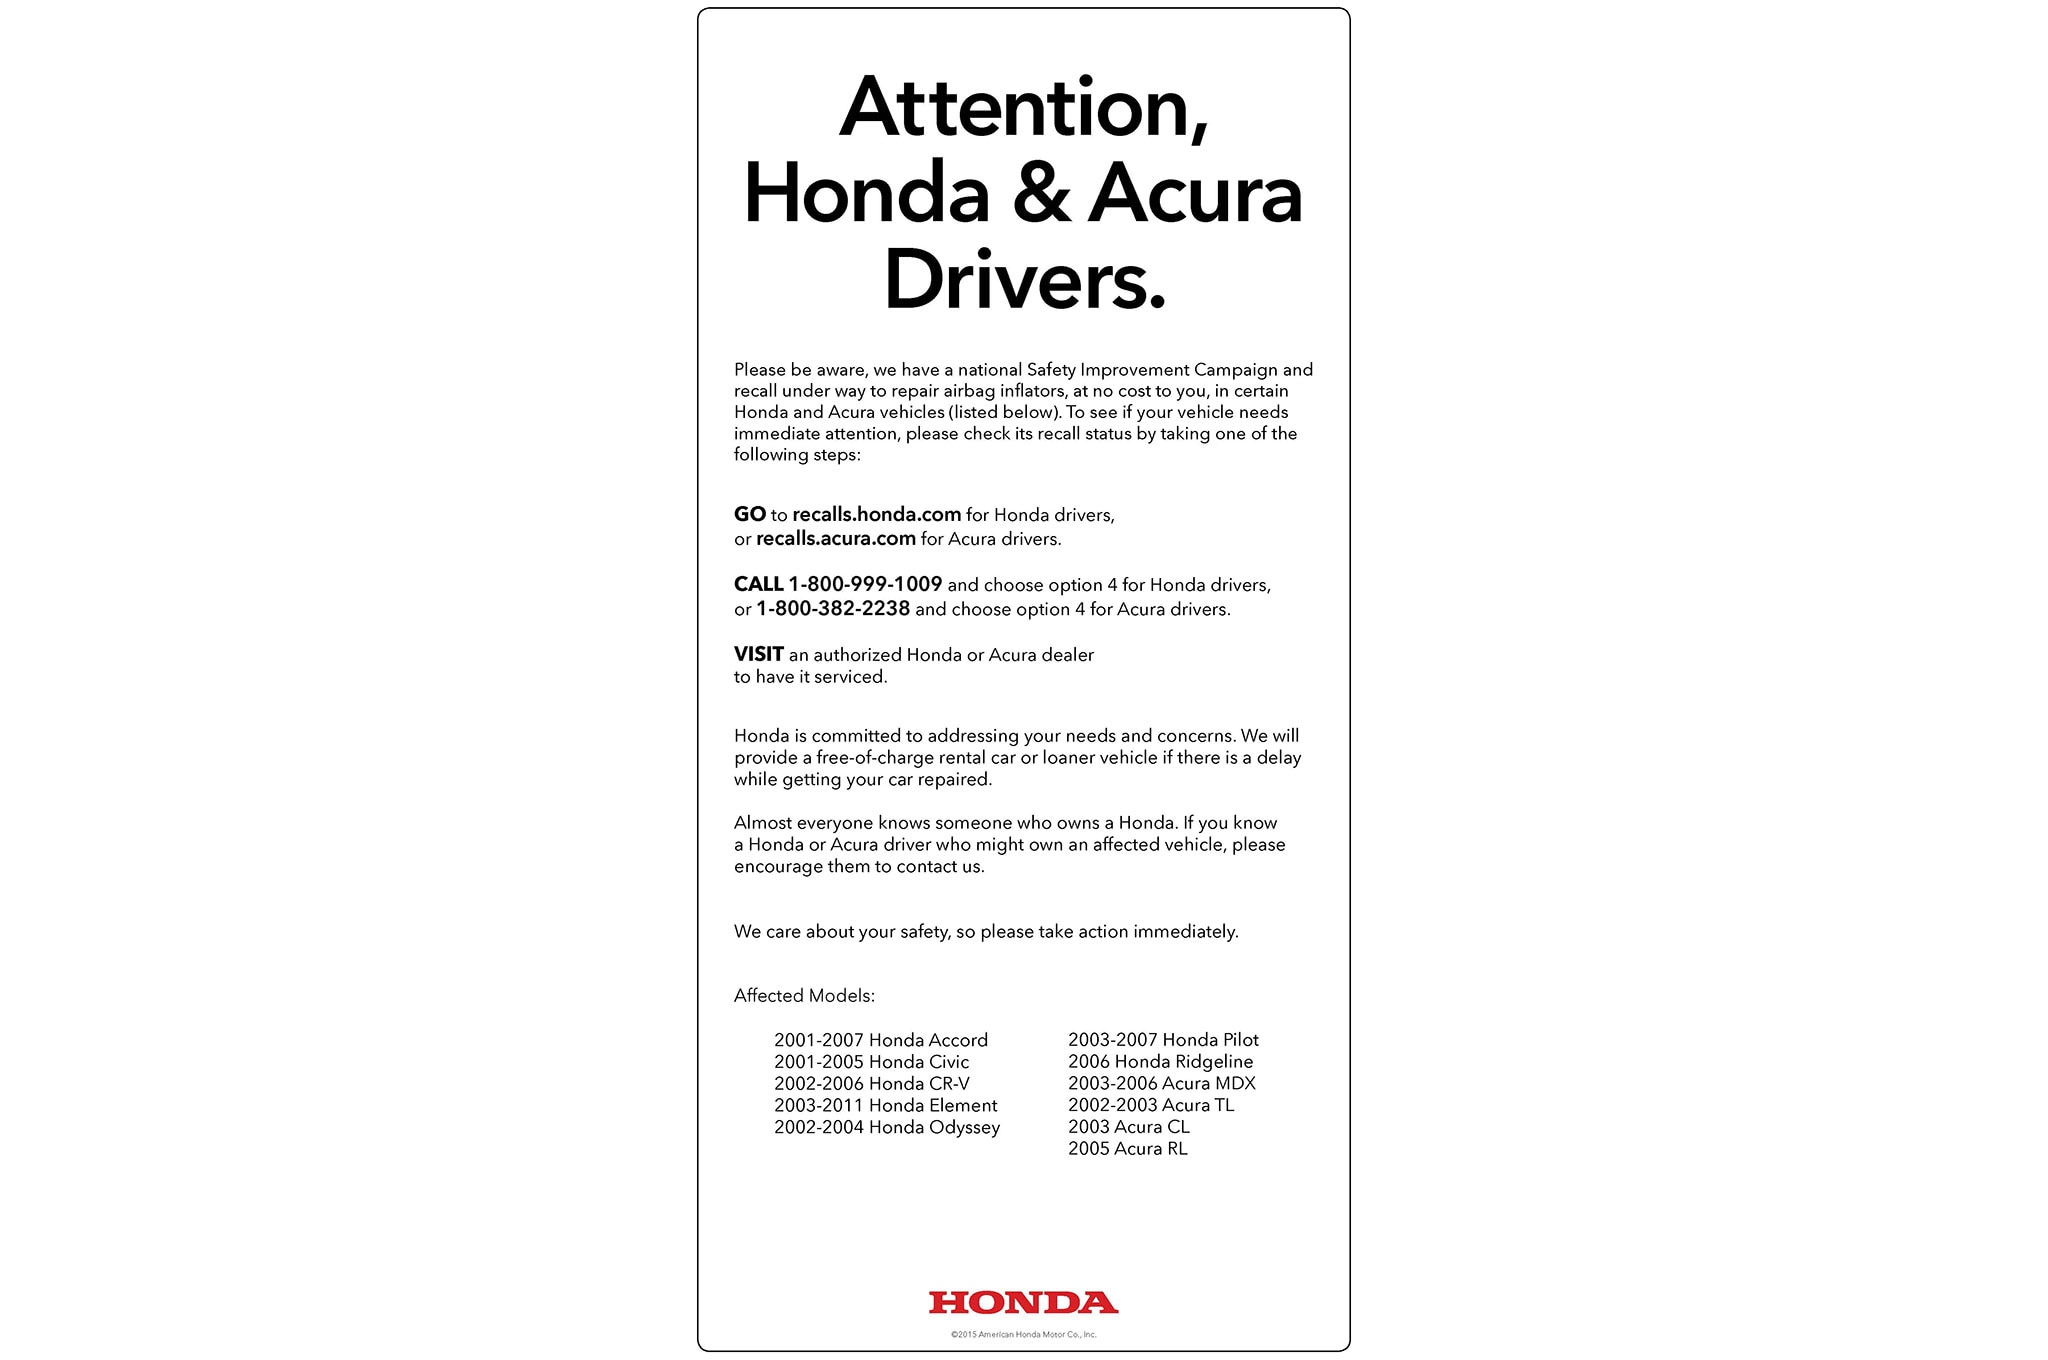 honda launches ad campaign to encourage airbag recall repairs